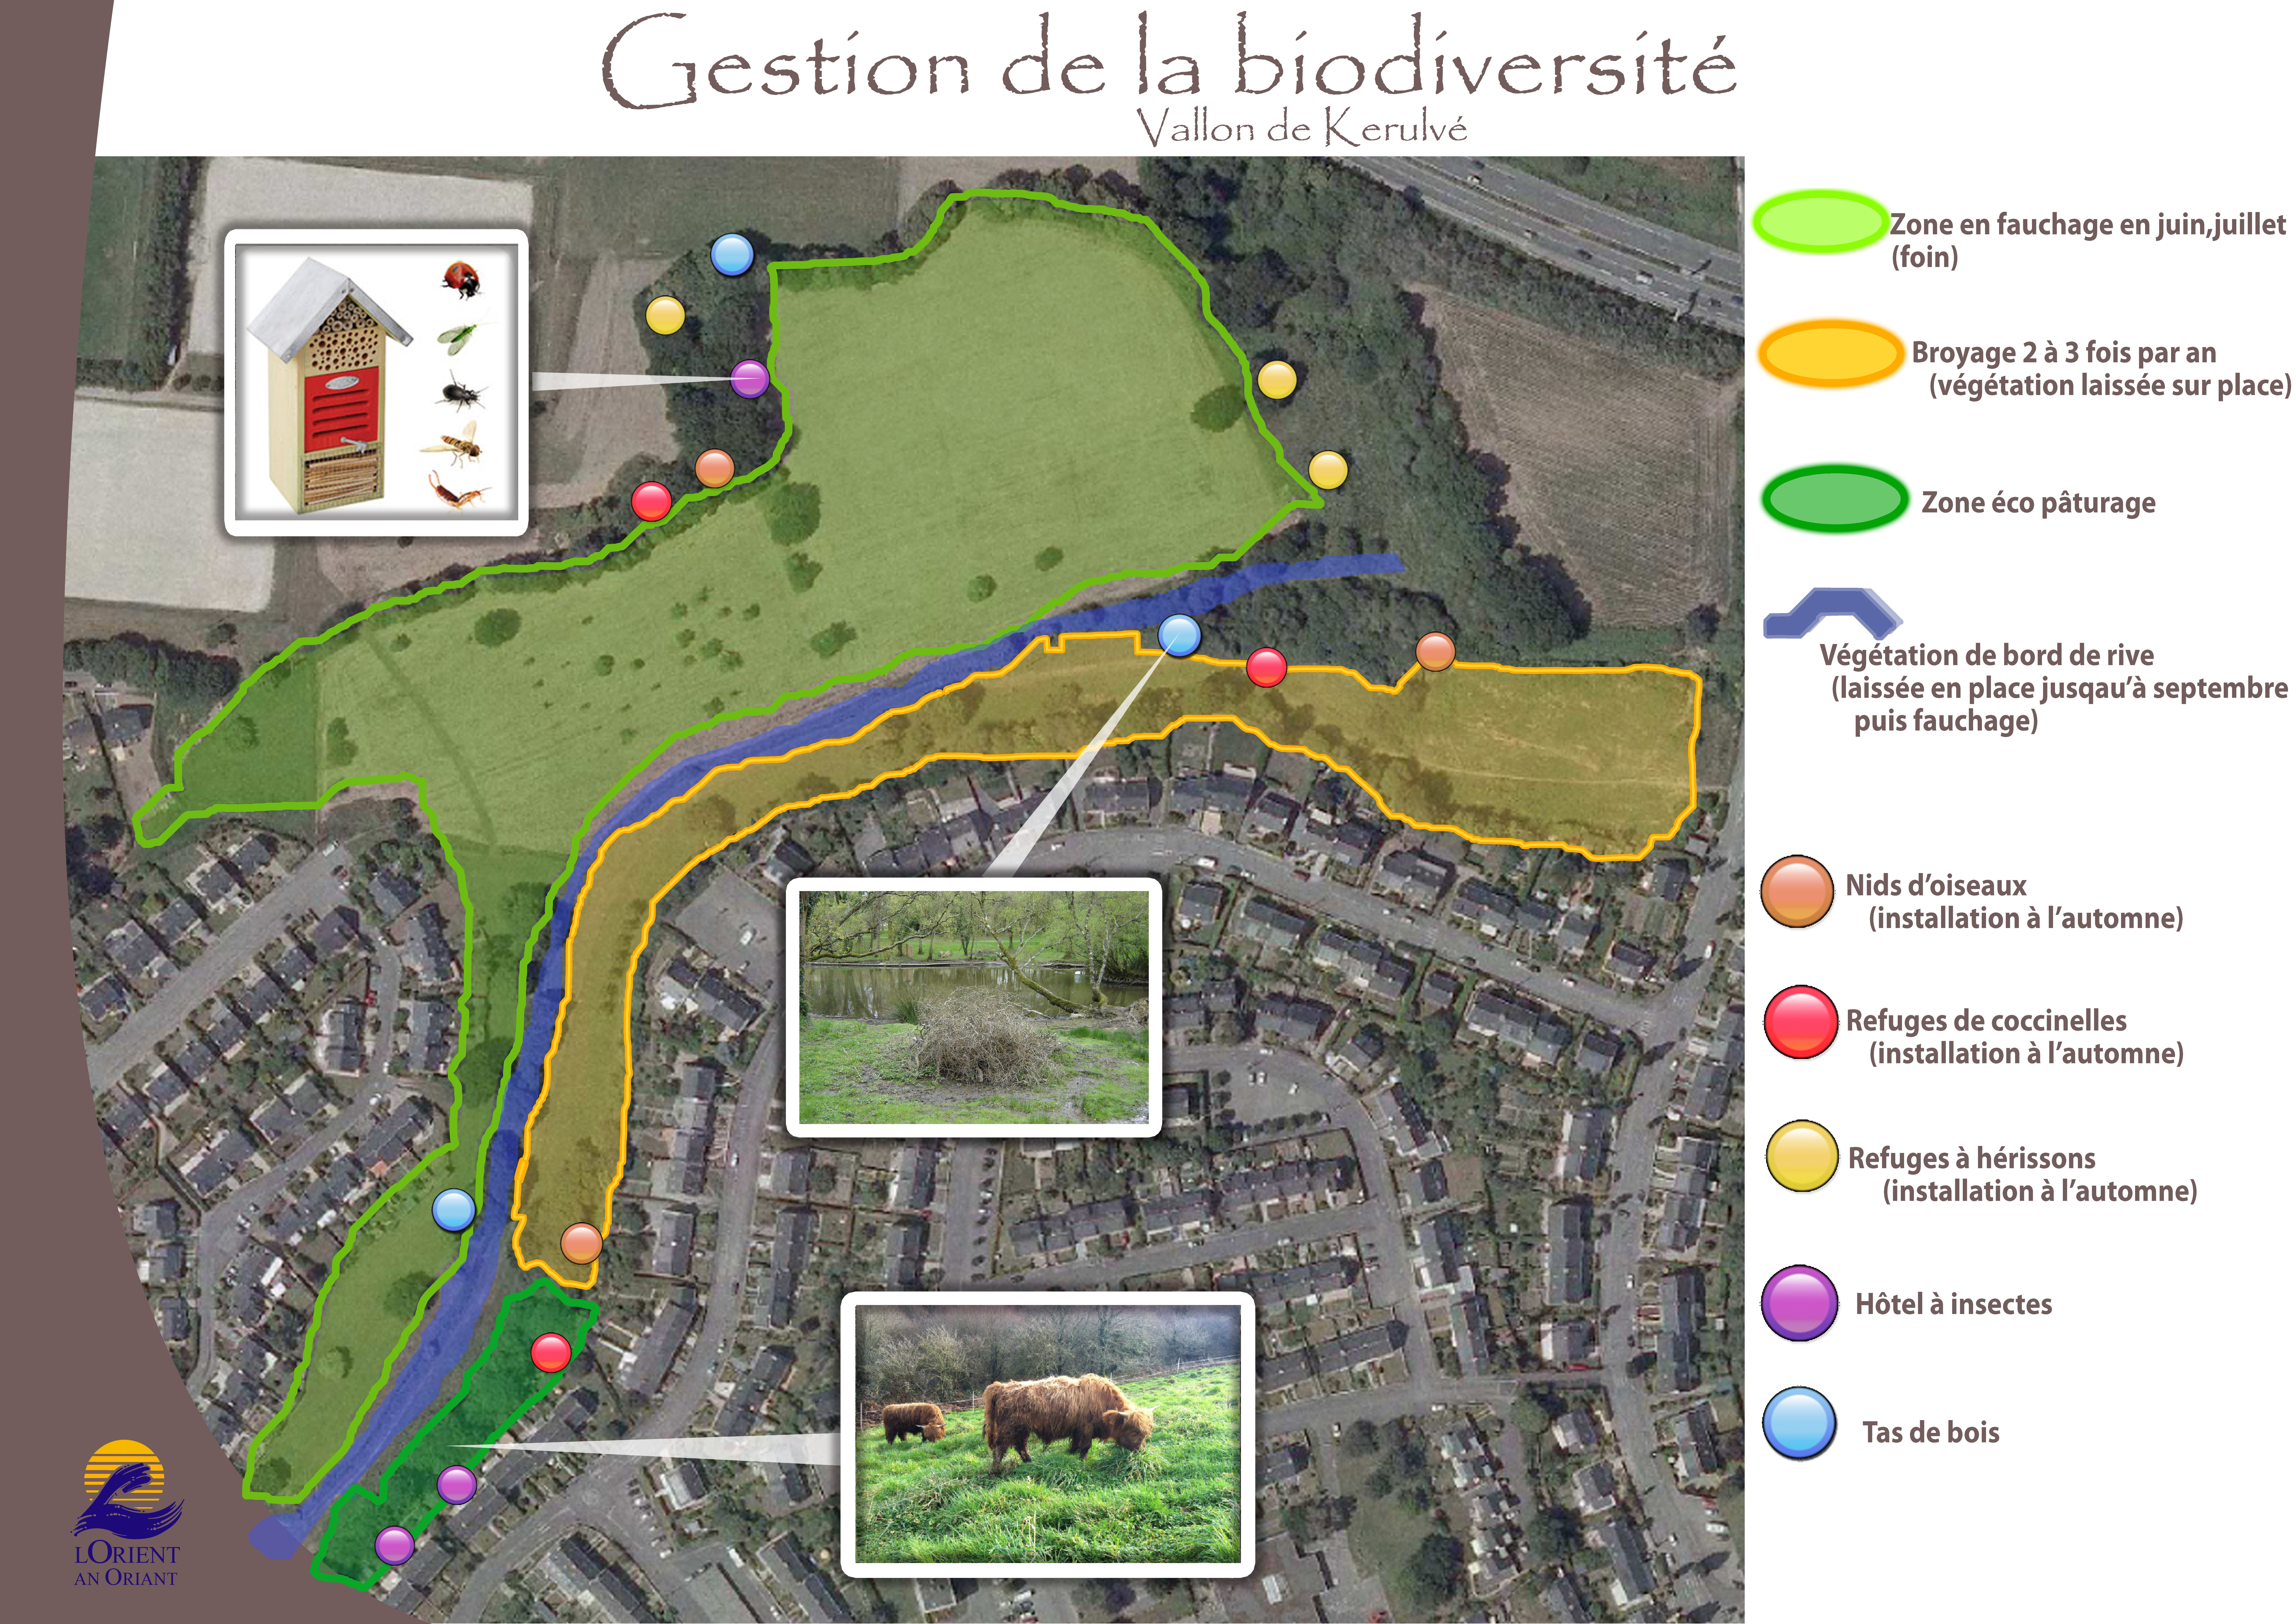 gestion_biodiversite_vallon_de_kerulve_-_copie.jpg